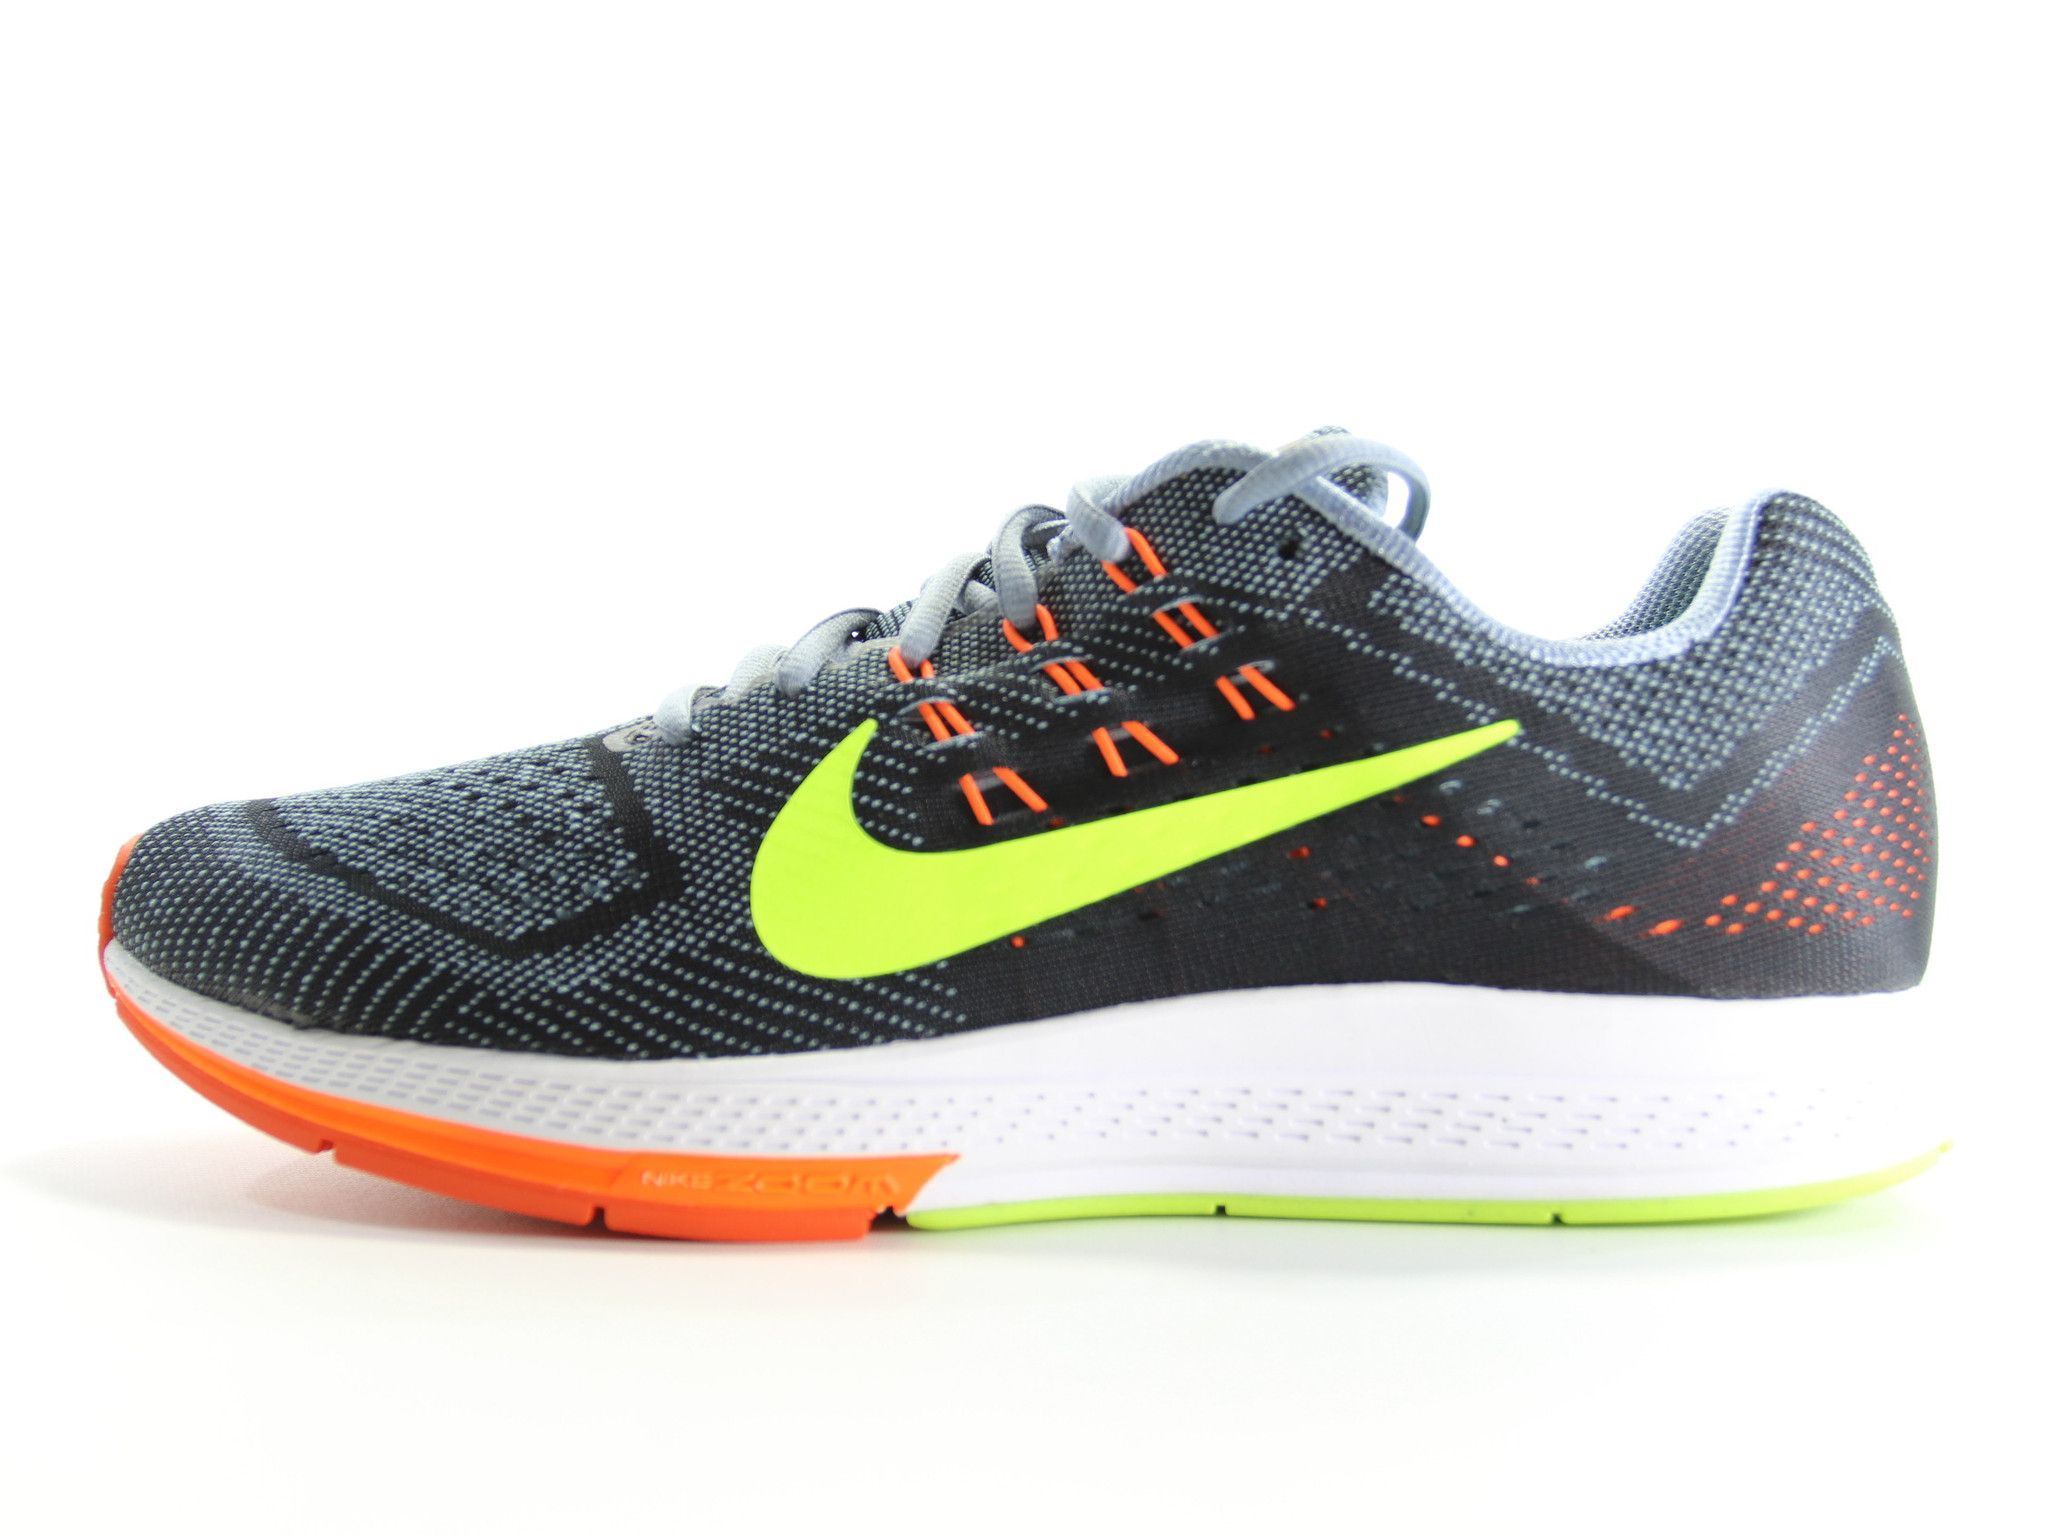 NIKE Air Zoom Structure 18 Running Shoes Size 11.5 (Grey/Black/Hyper-